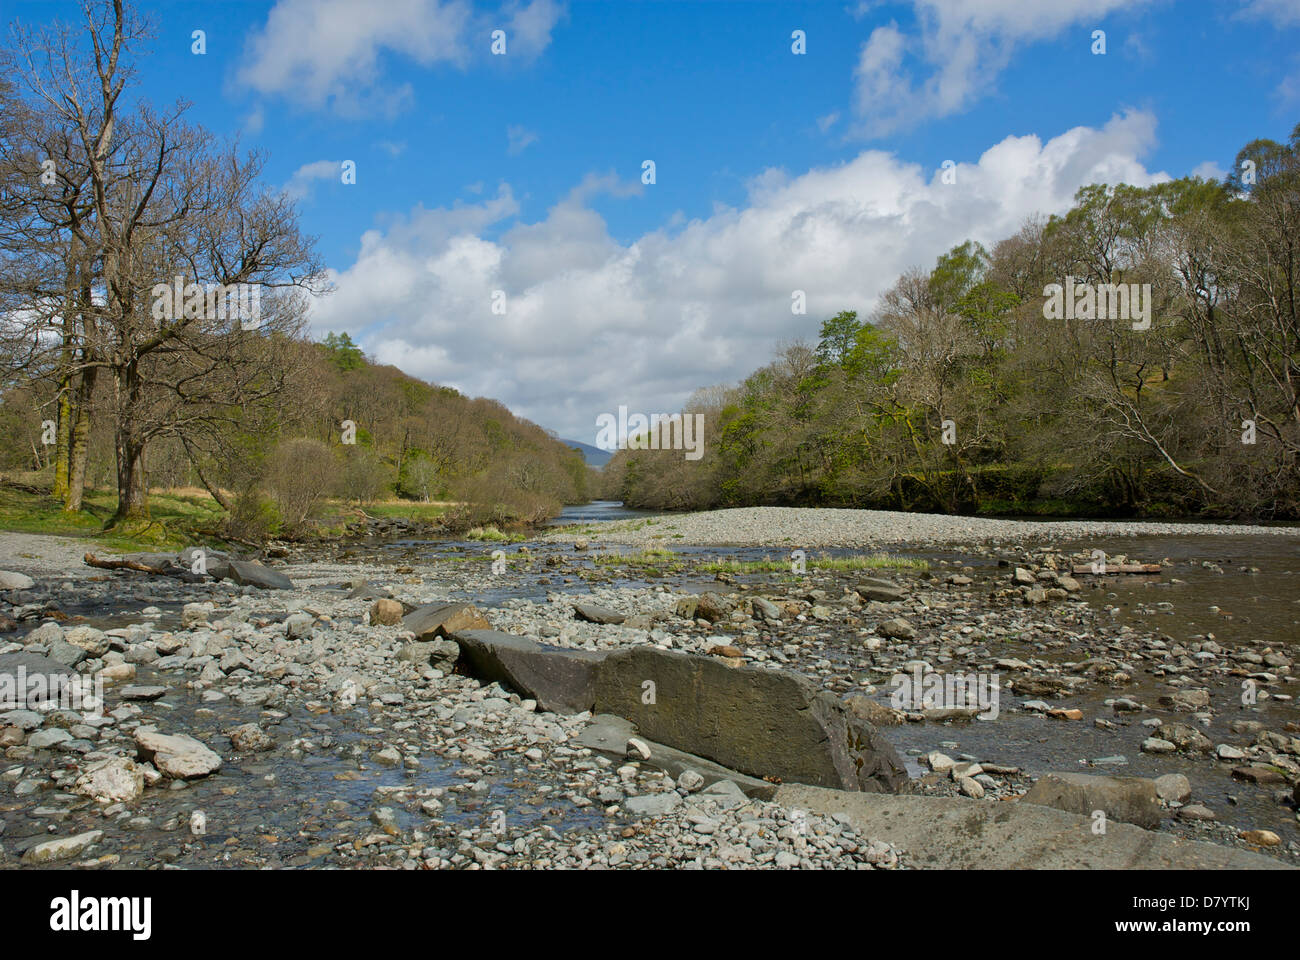 The River Derwent, in Borrowdale, Lake District National Park, Cumbria, England UK - Stock Image